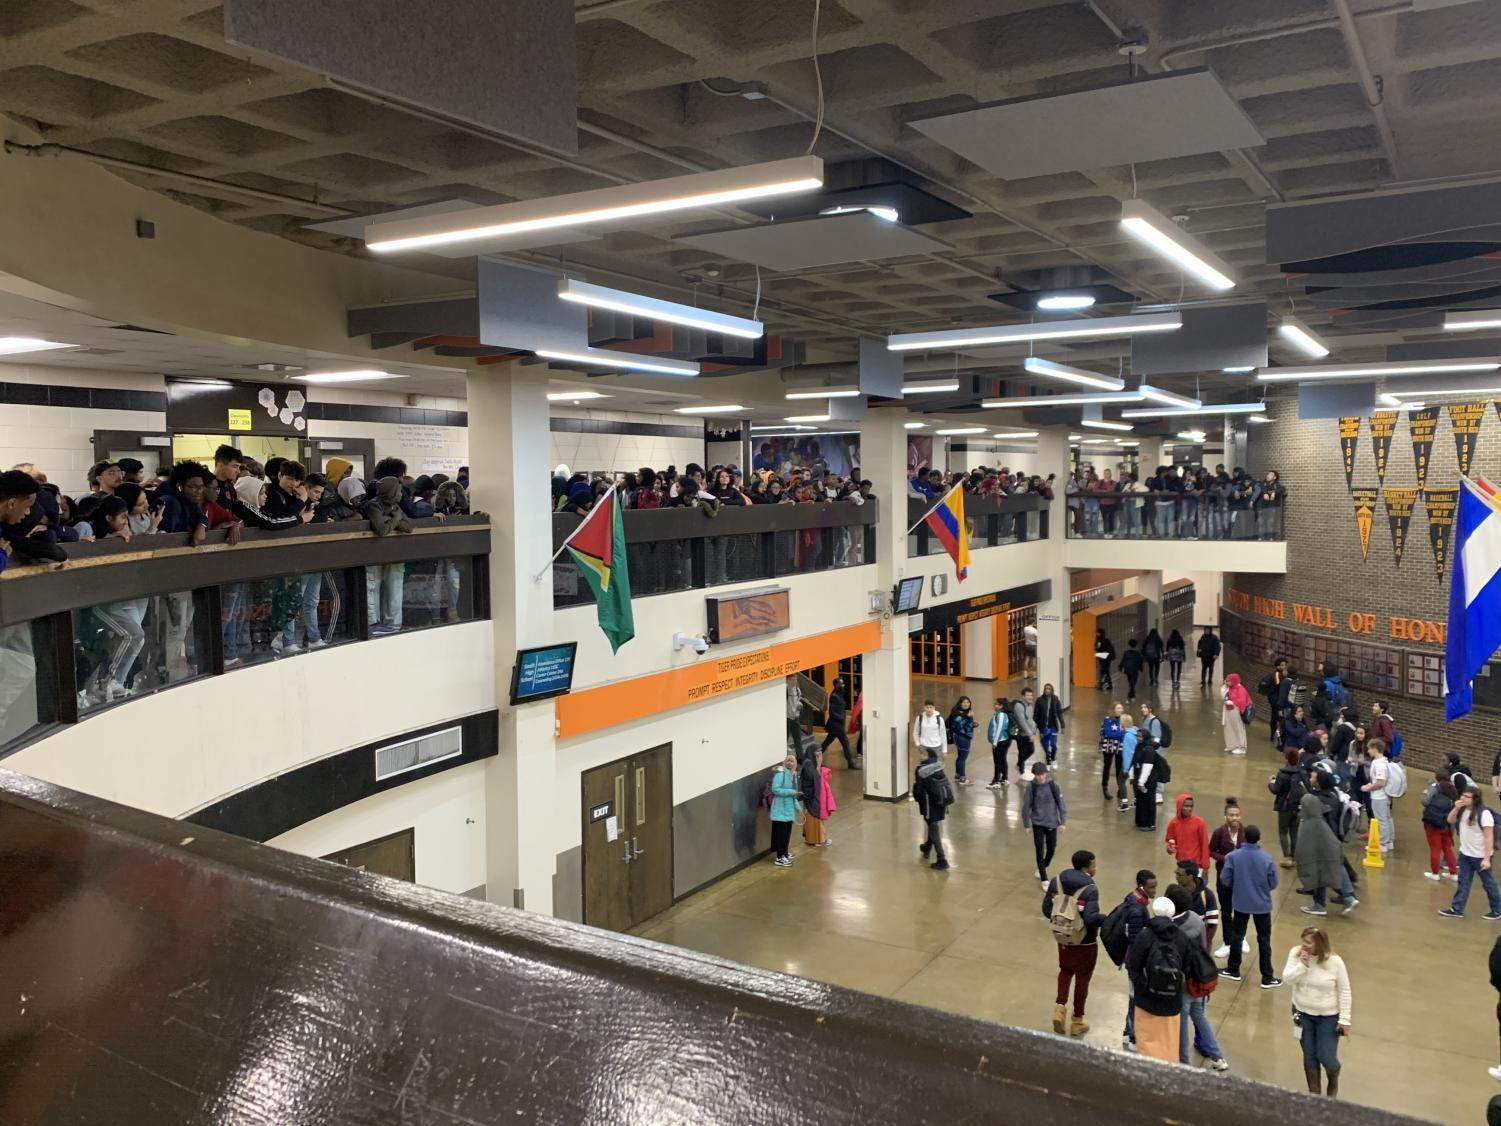 South is known for its ability to protest over matters they care about. On November 22, students gathered on the balcony to protest against increasingly strict security at South, specifically a cutdown on student passes.